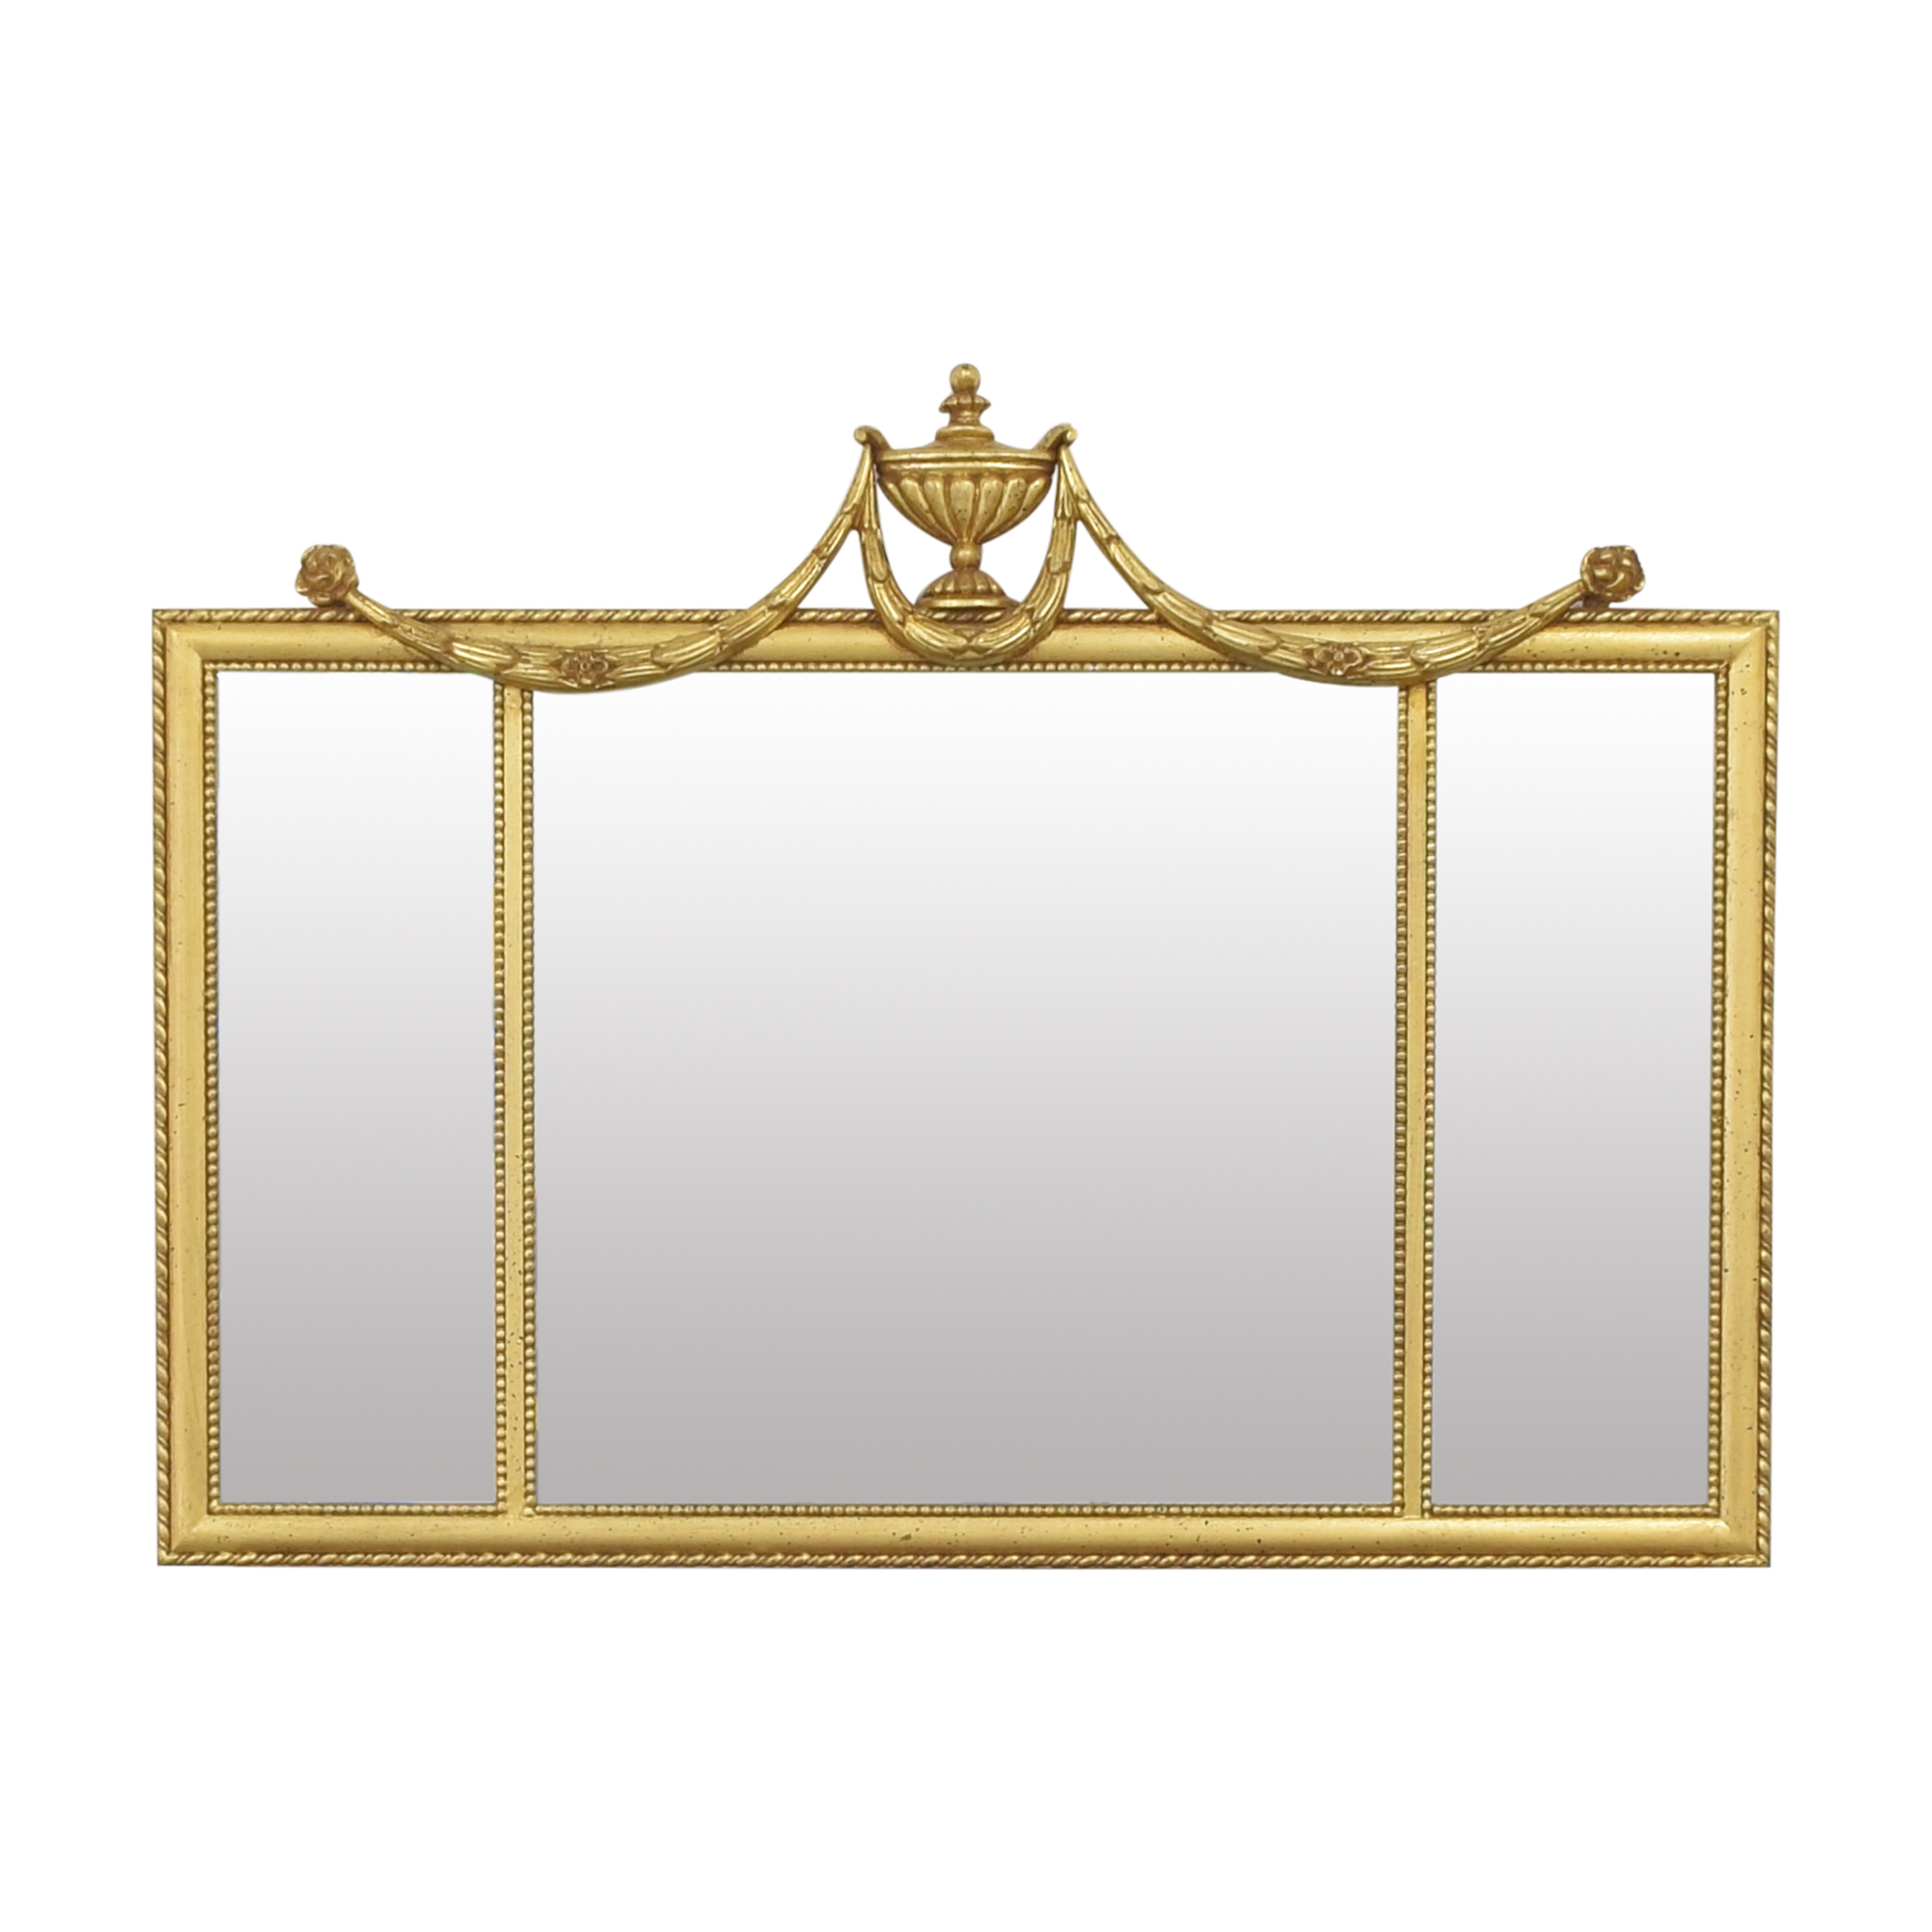 Ethan Allen Ethan Allen Three Panel Wall Mirror on sale